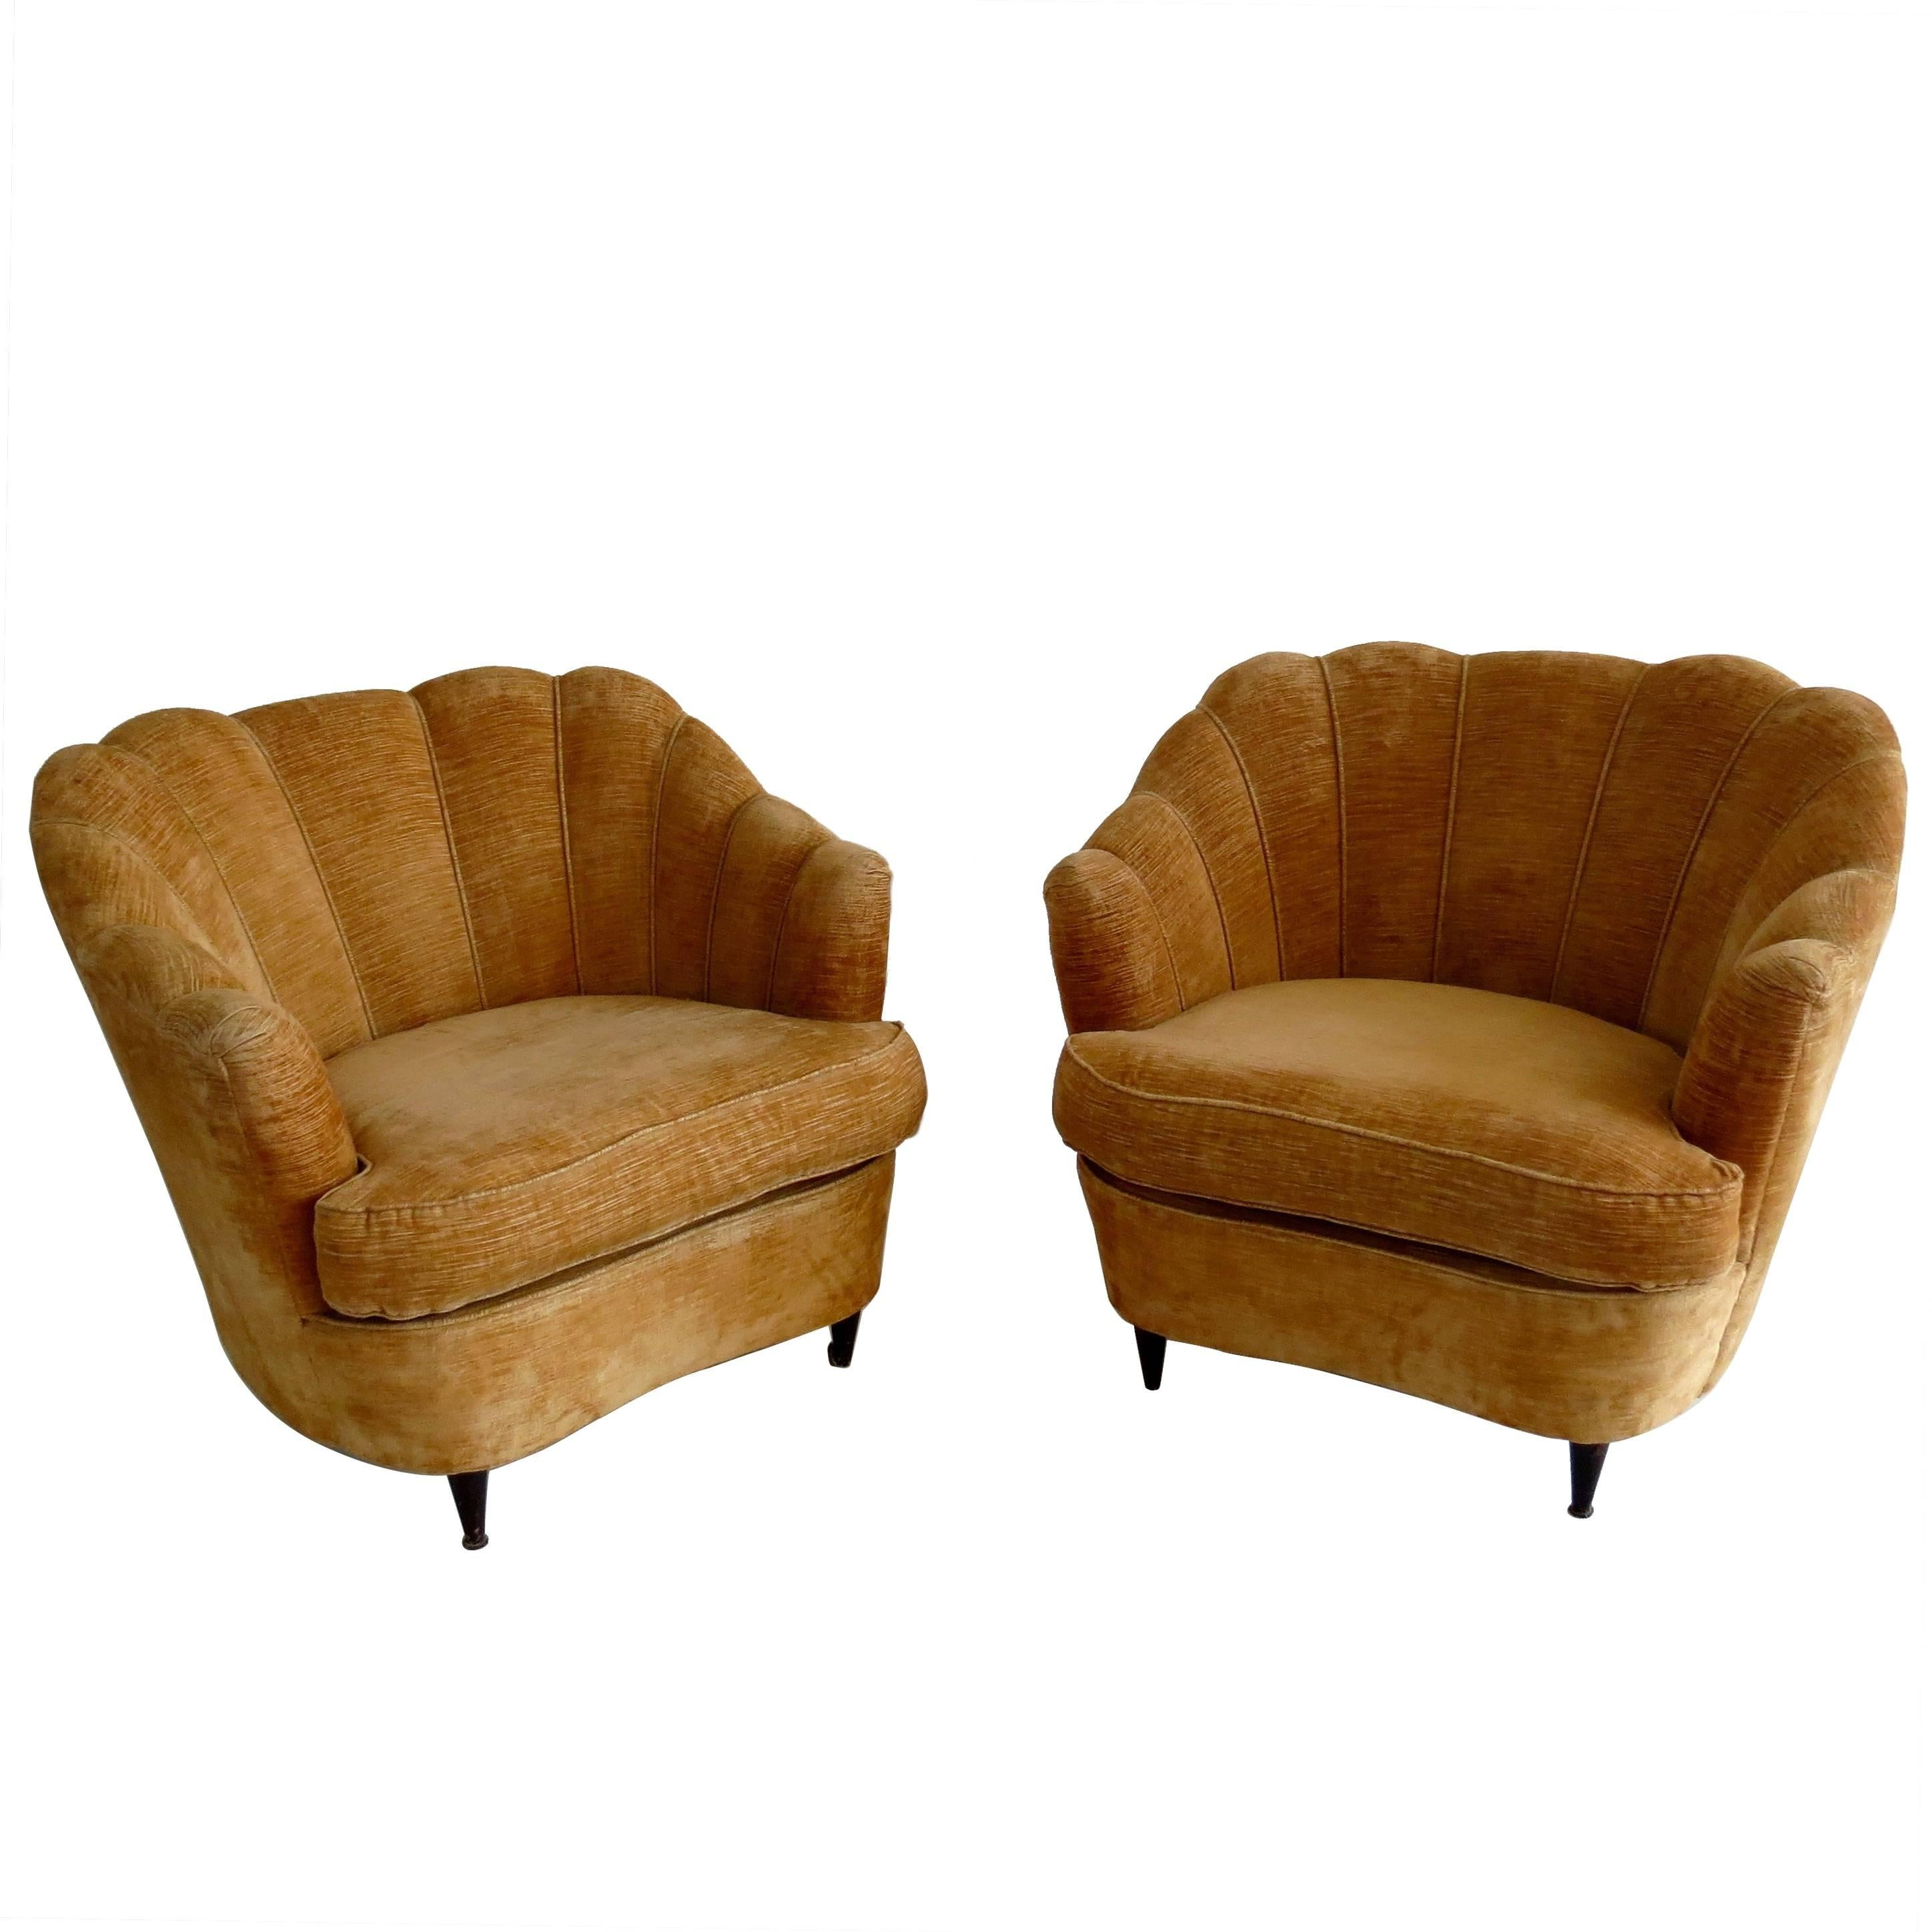 Pair of Large Armchairs Attributed to Guglielmo Ulrich, 1950